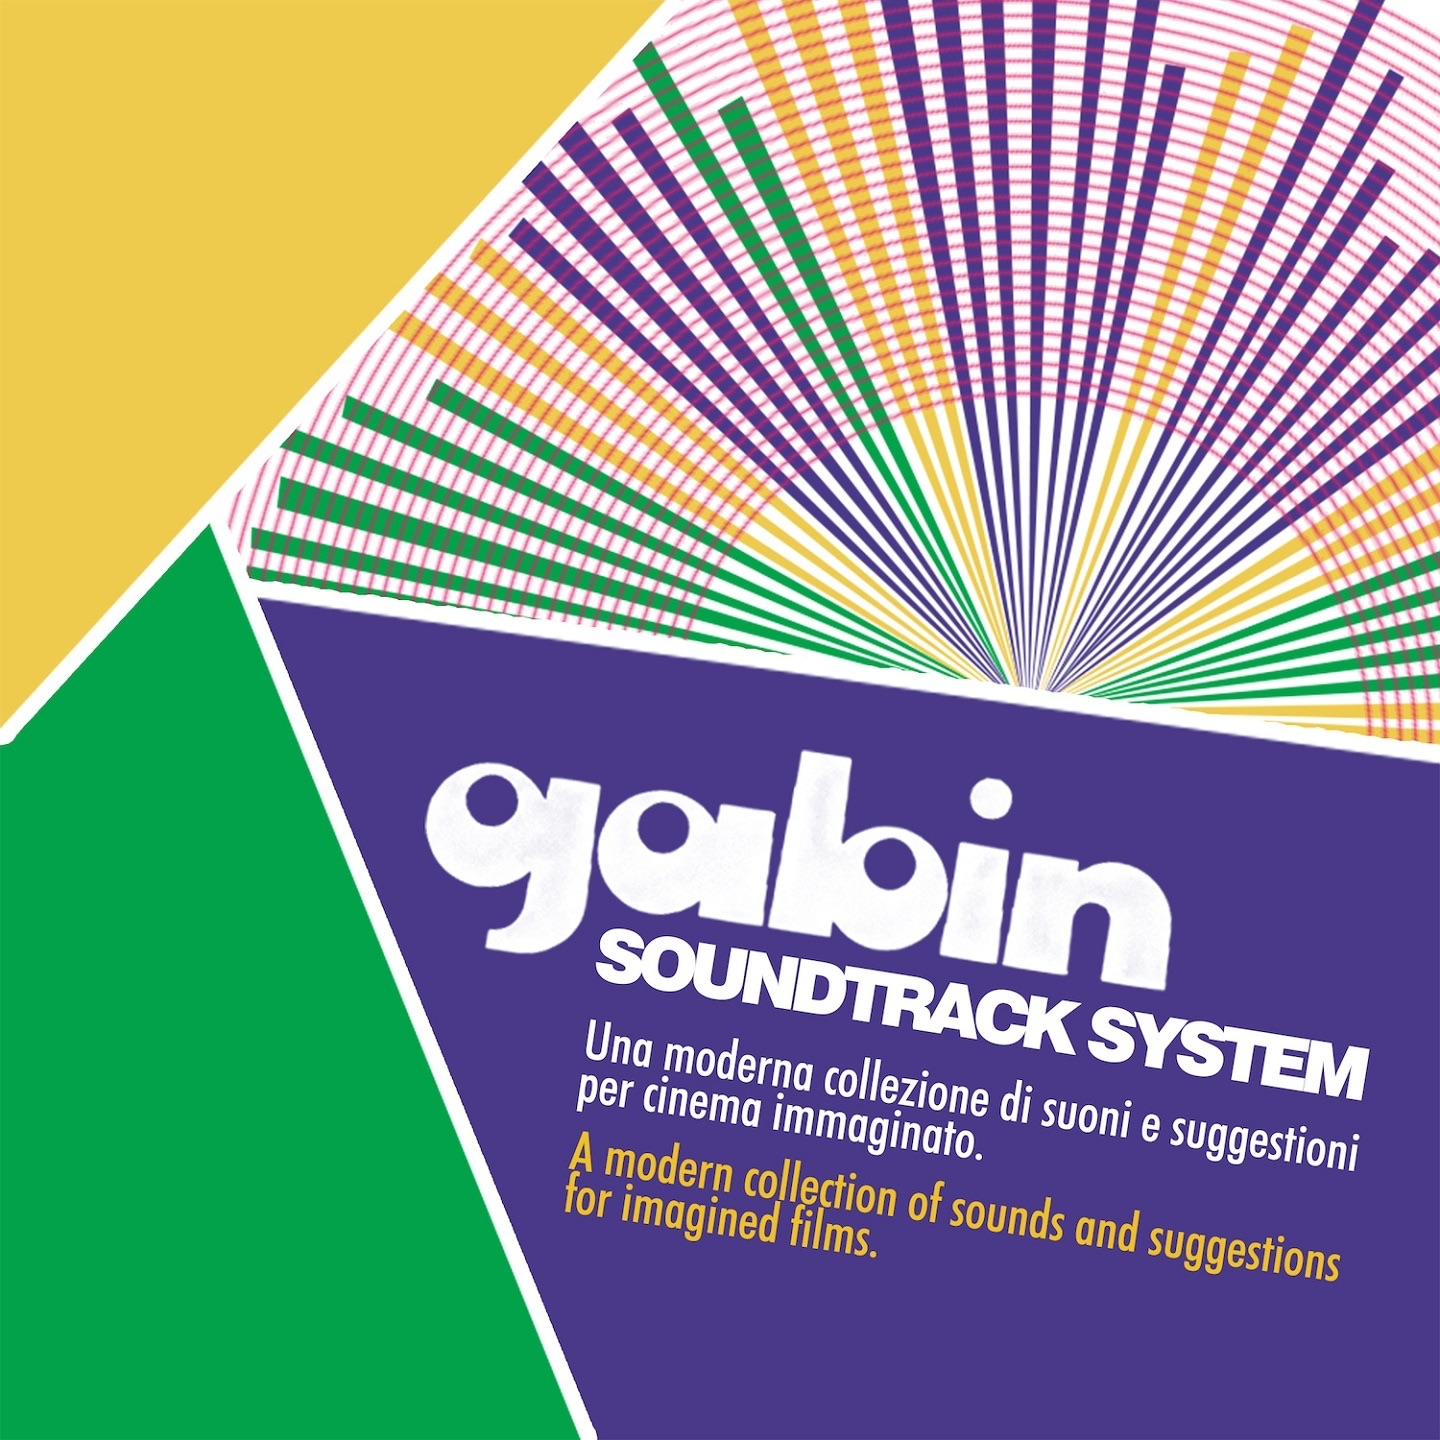 Soundtrack System (A Modern Collection of Sounds and Suggestions for Imagined Films)